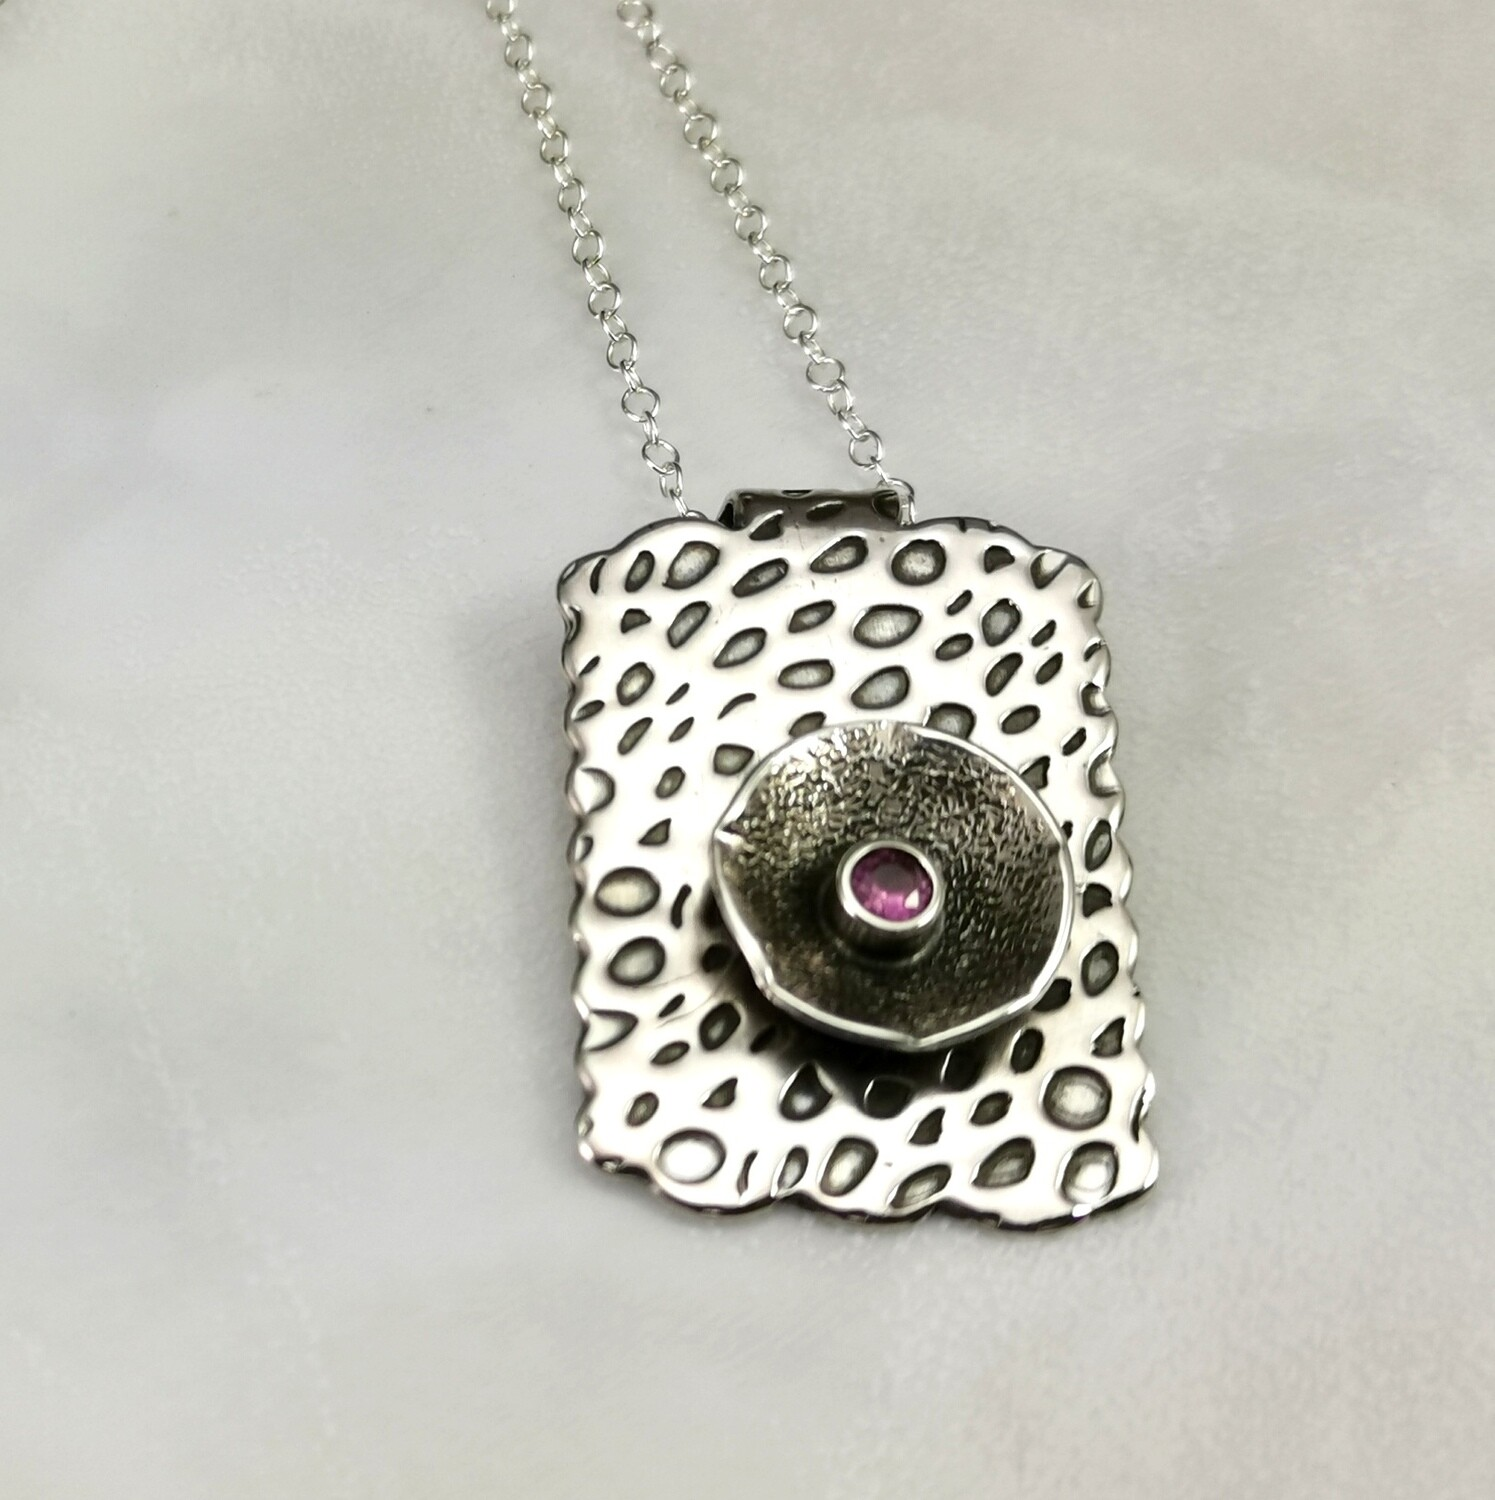 Sterling Silver Pendant with Scalloped Edges and Tube Set Pink Sapphire CZ Faceted Stone